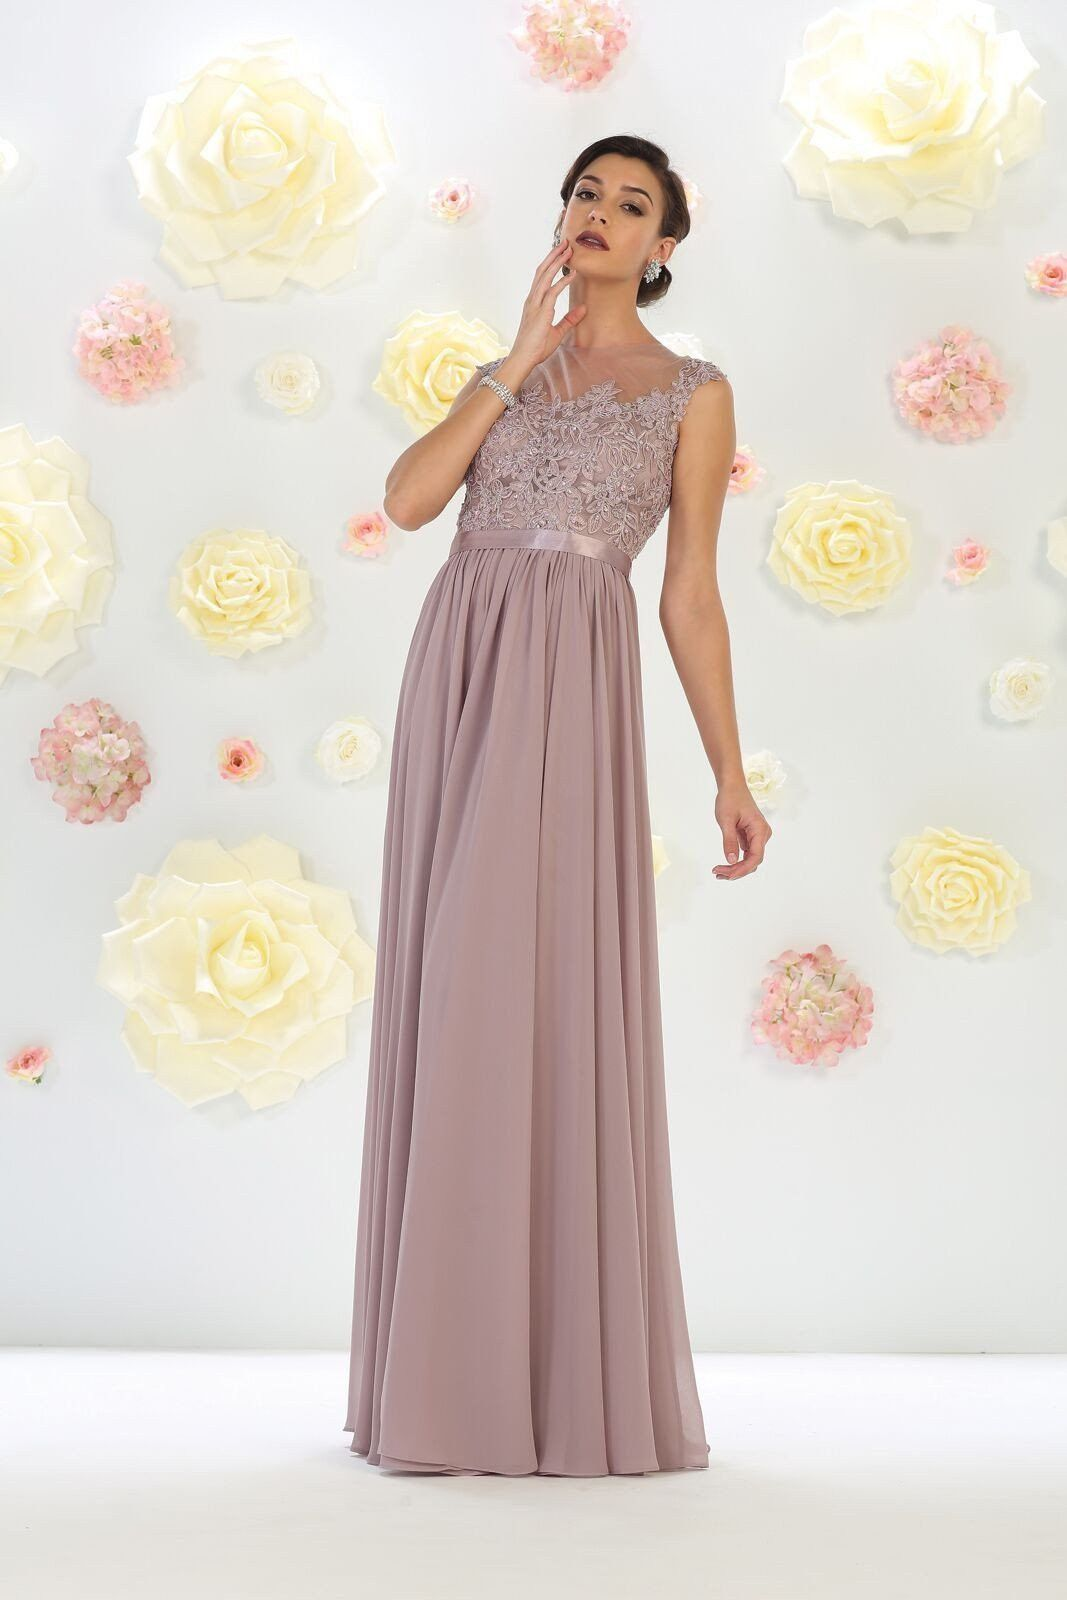 Formal long dress plus size wedding gown products pinterest